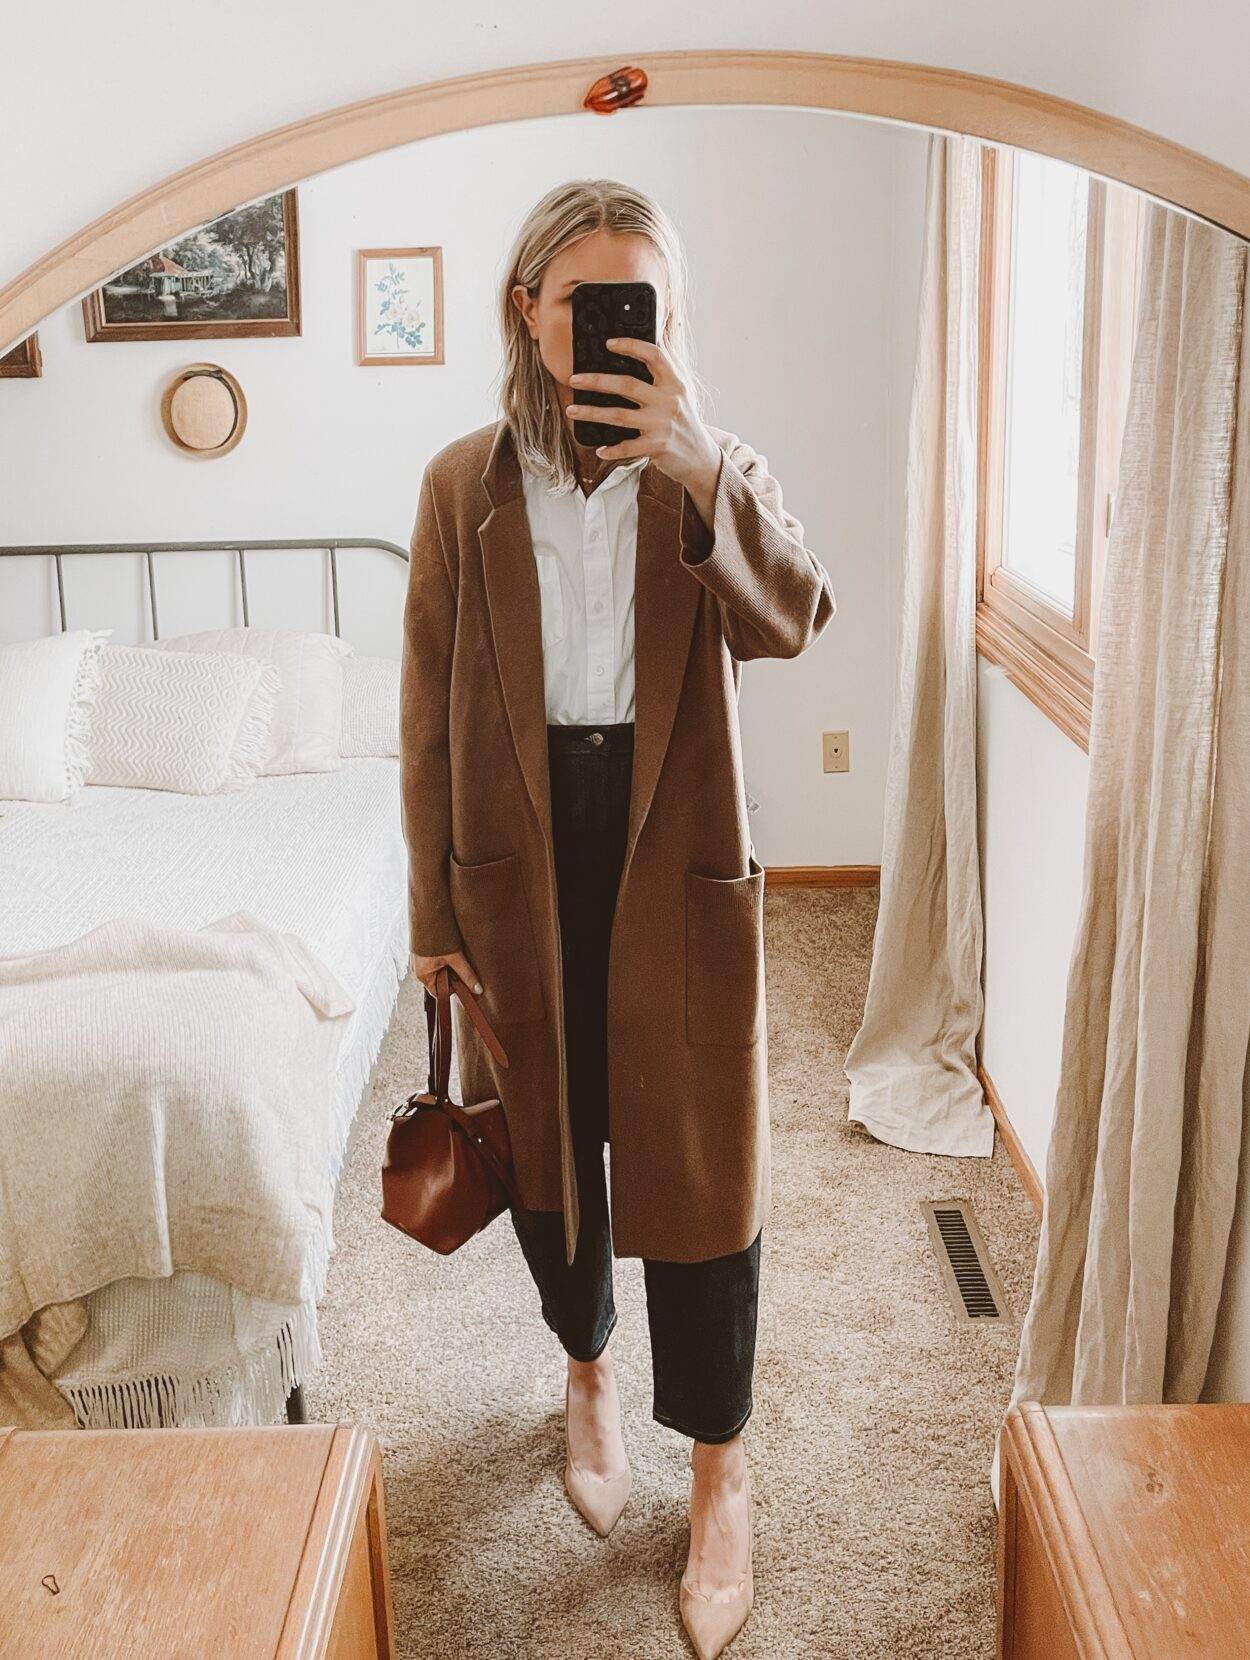 arc jeans everlane, date night outfits, balloon jeans, nude suede heels